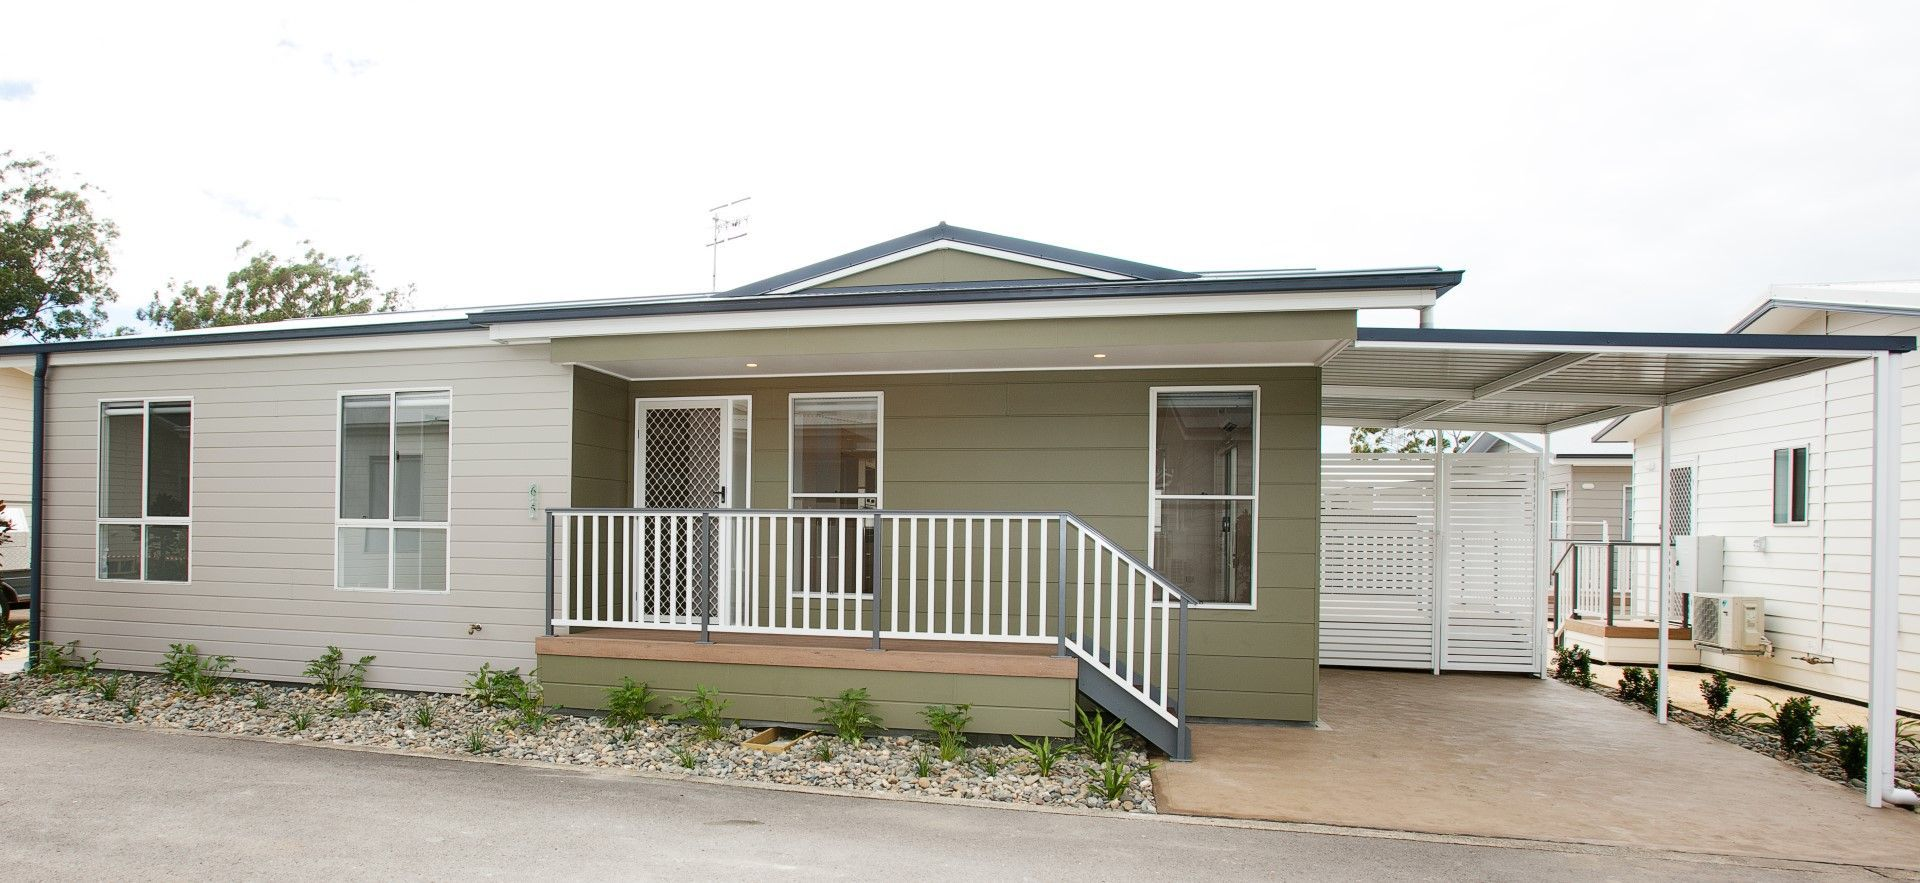 65/1 Fleet St, Salamander Bay NSW 2317, Image 0